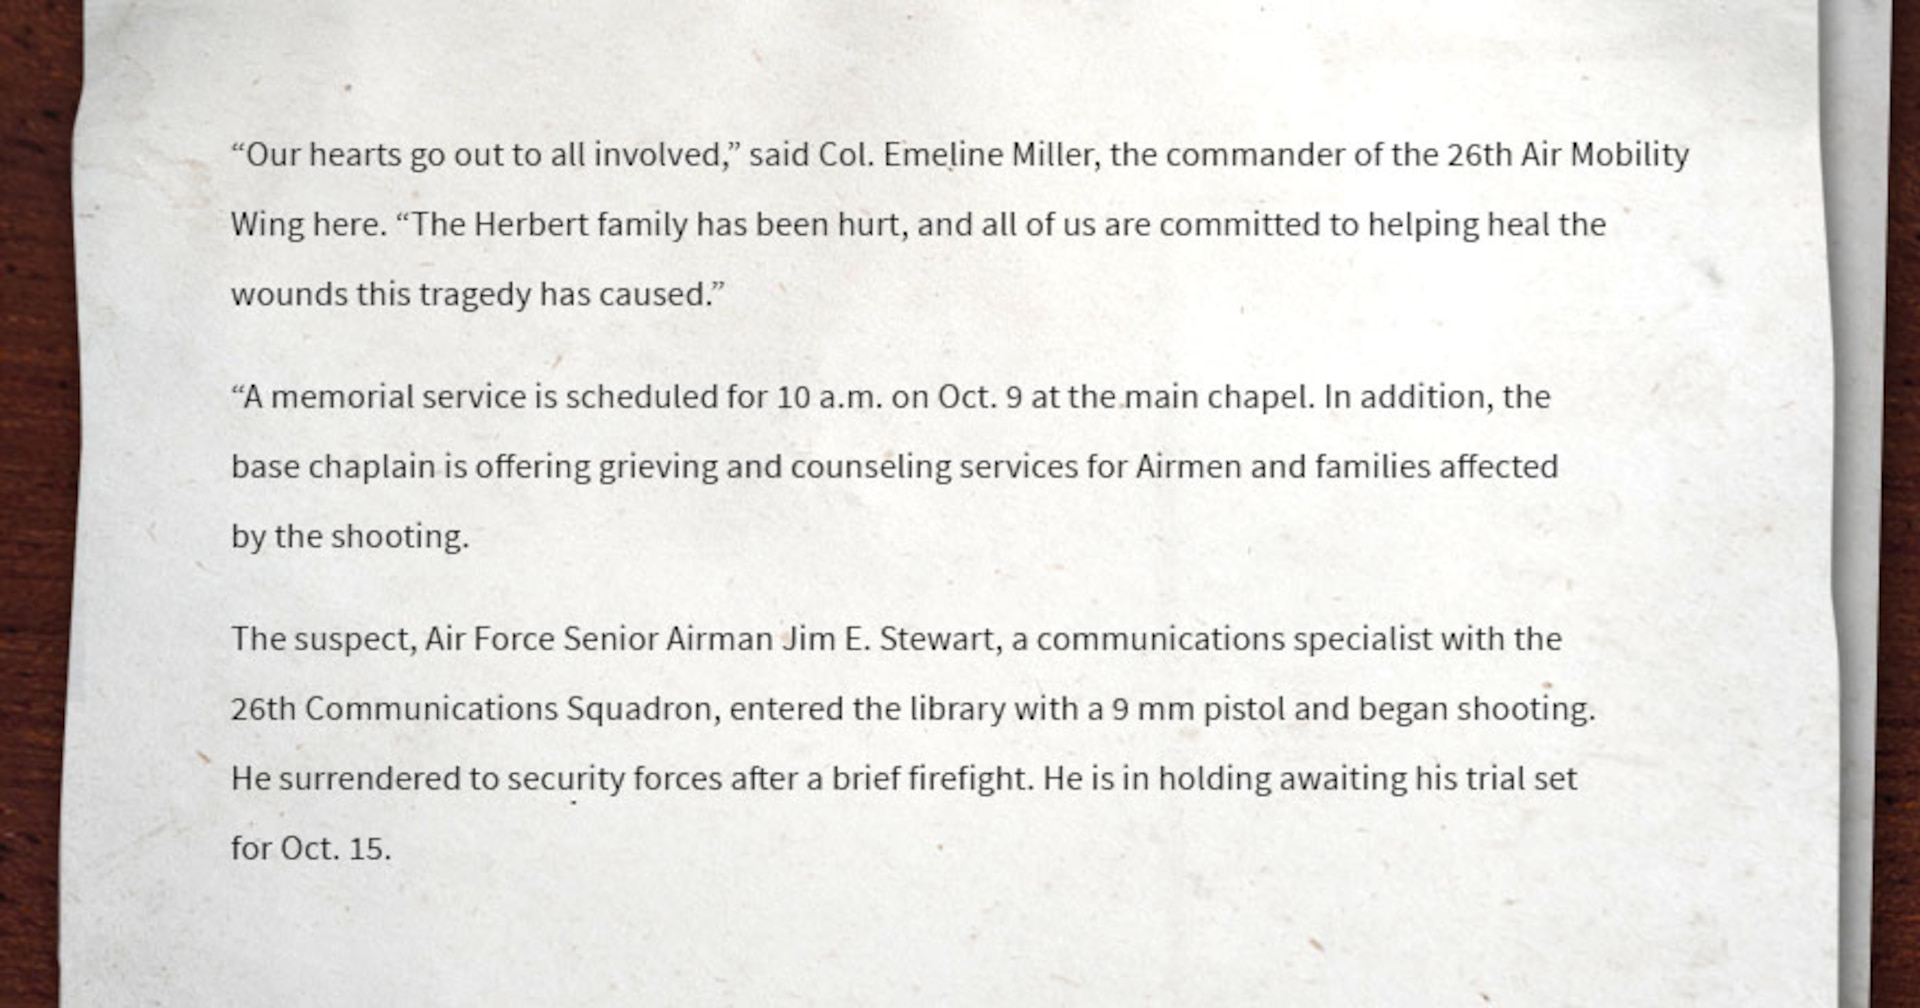 Image of miscellaneous text that provides a quote from the commander, the day and time of the memorial service and information on the suspect.